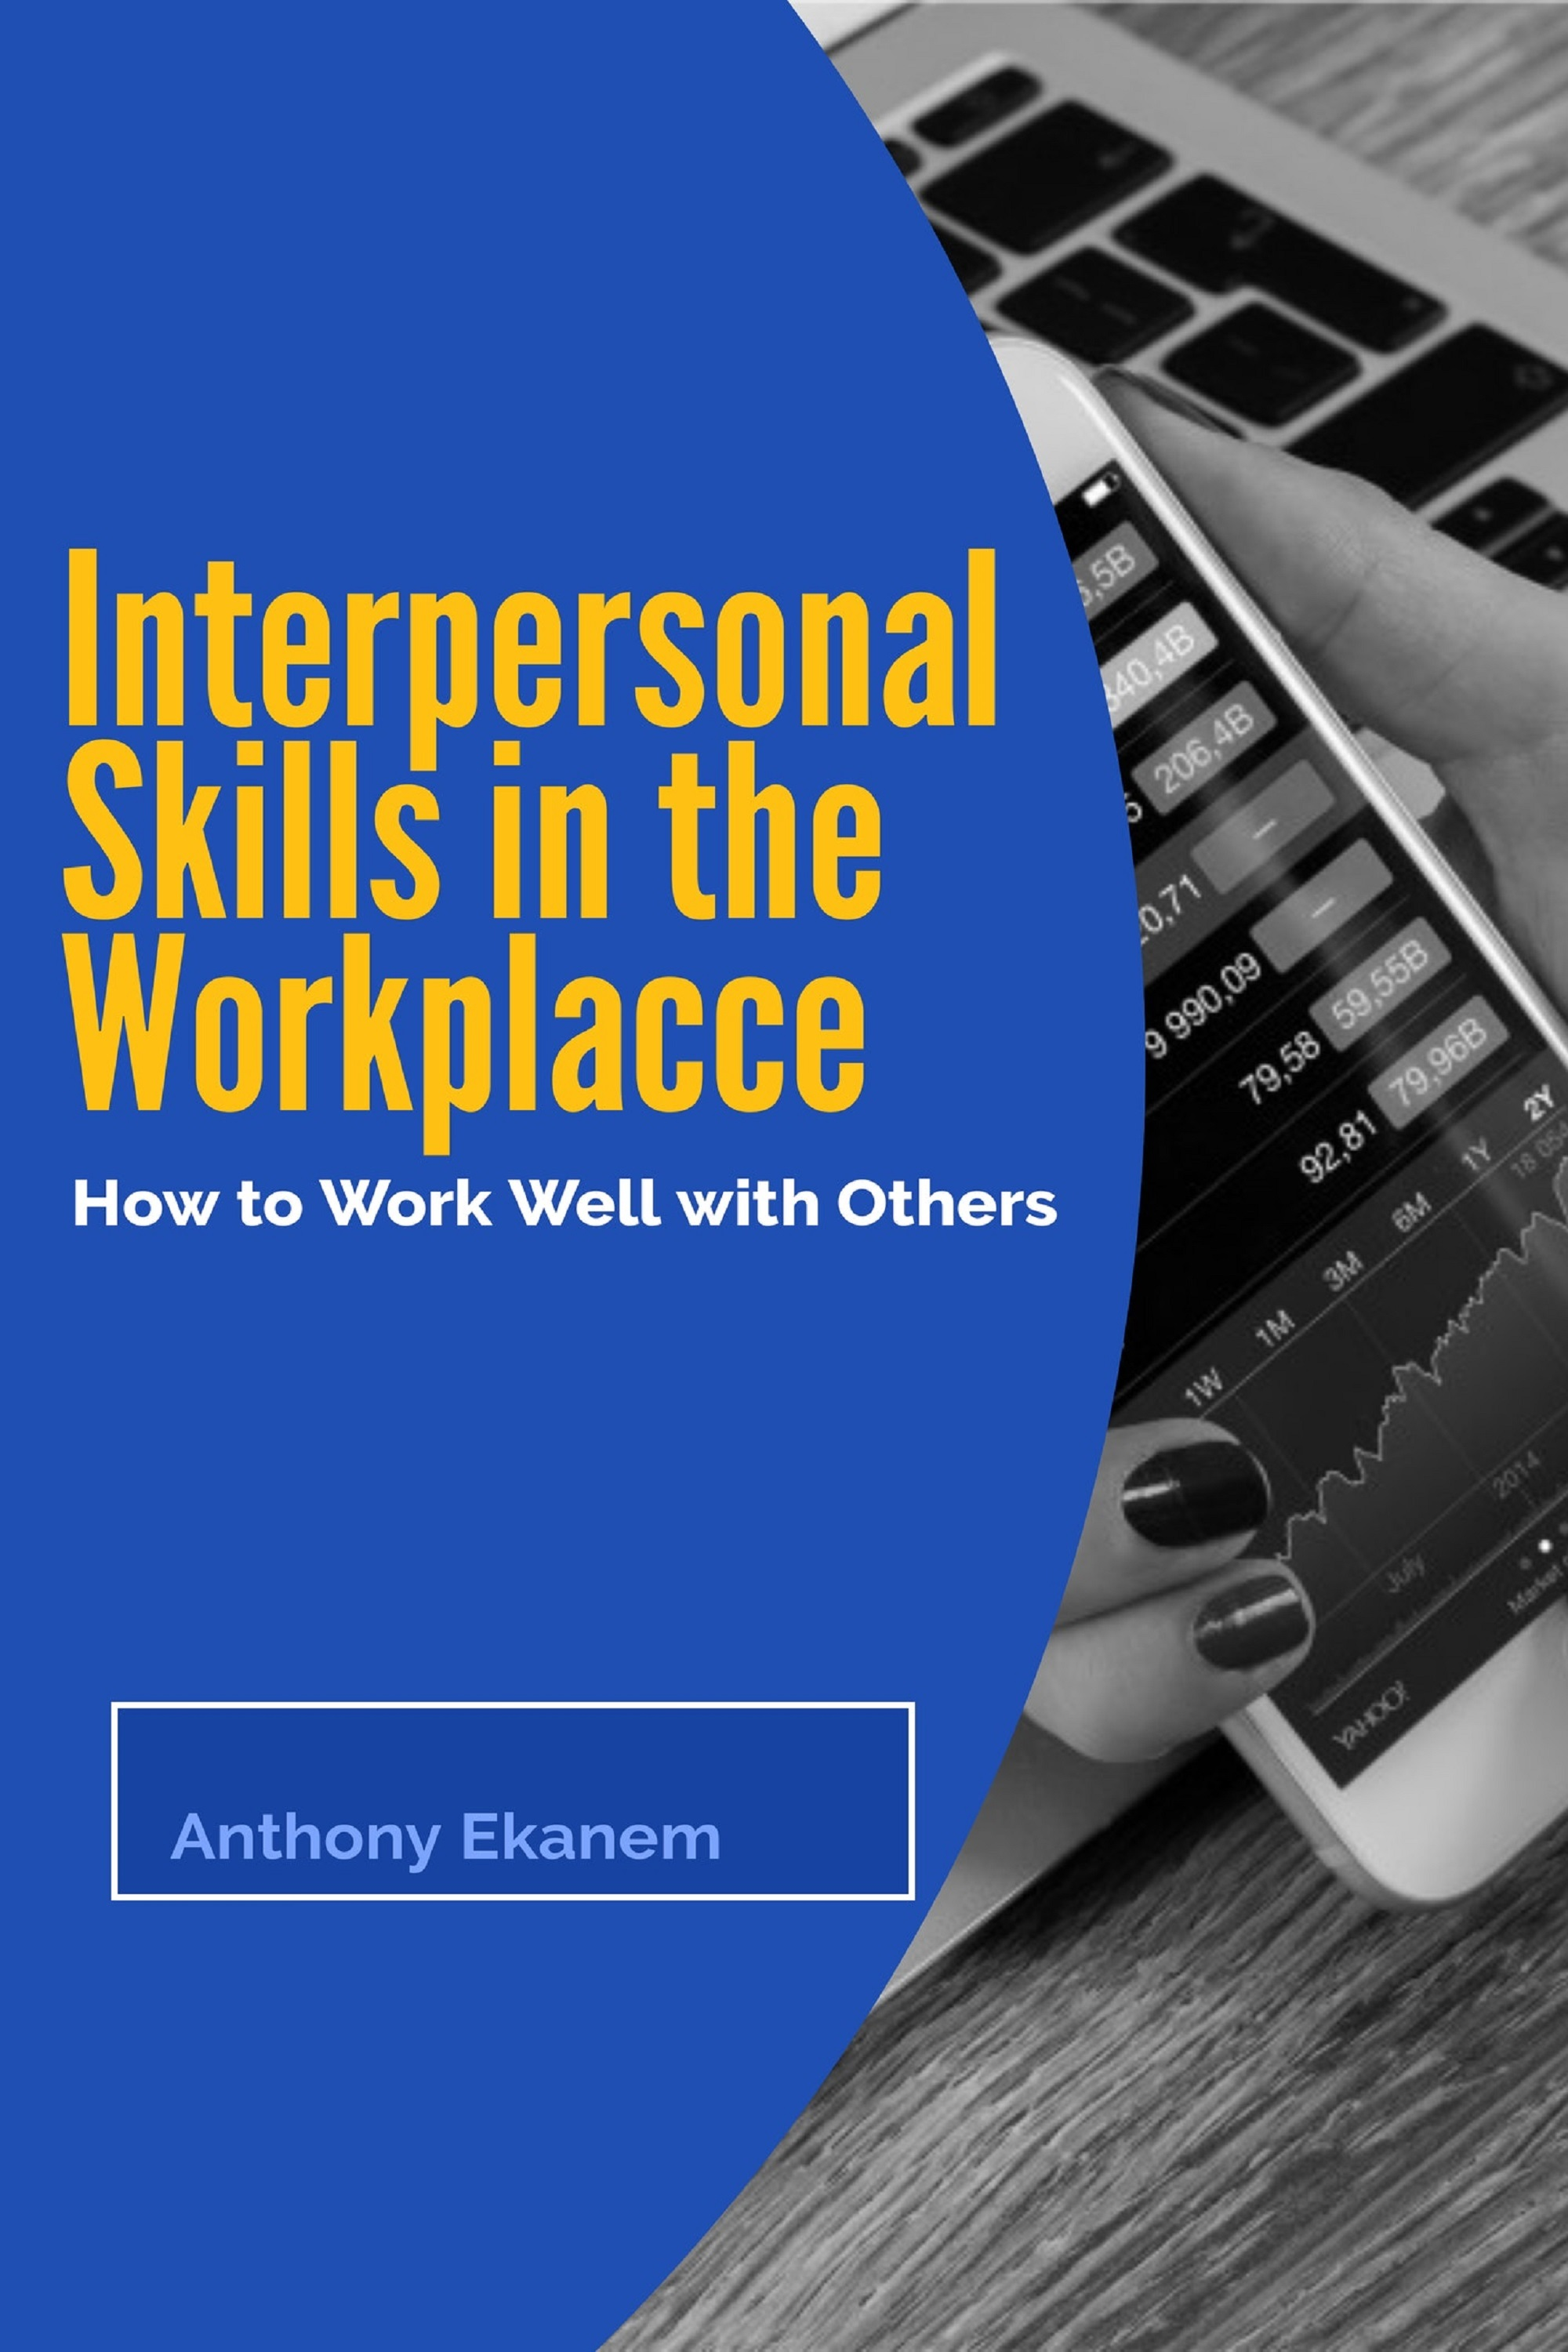 Anthony Ekanem Interpersonal Skills in the Workplace conte sexual harassment in the workplace law